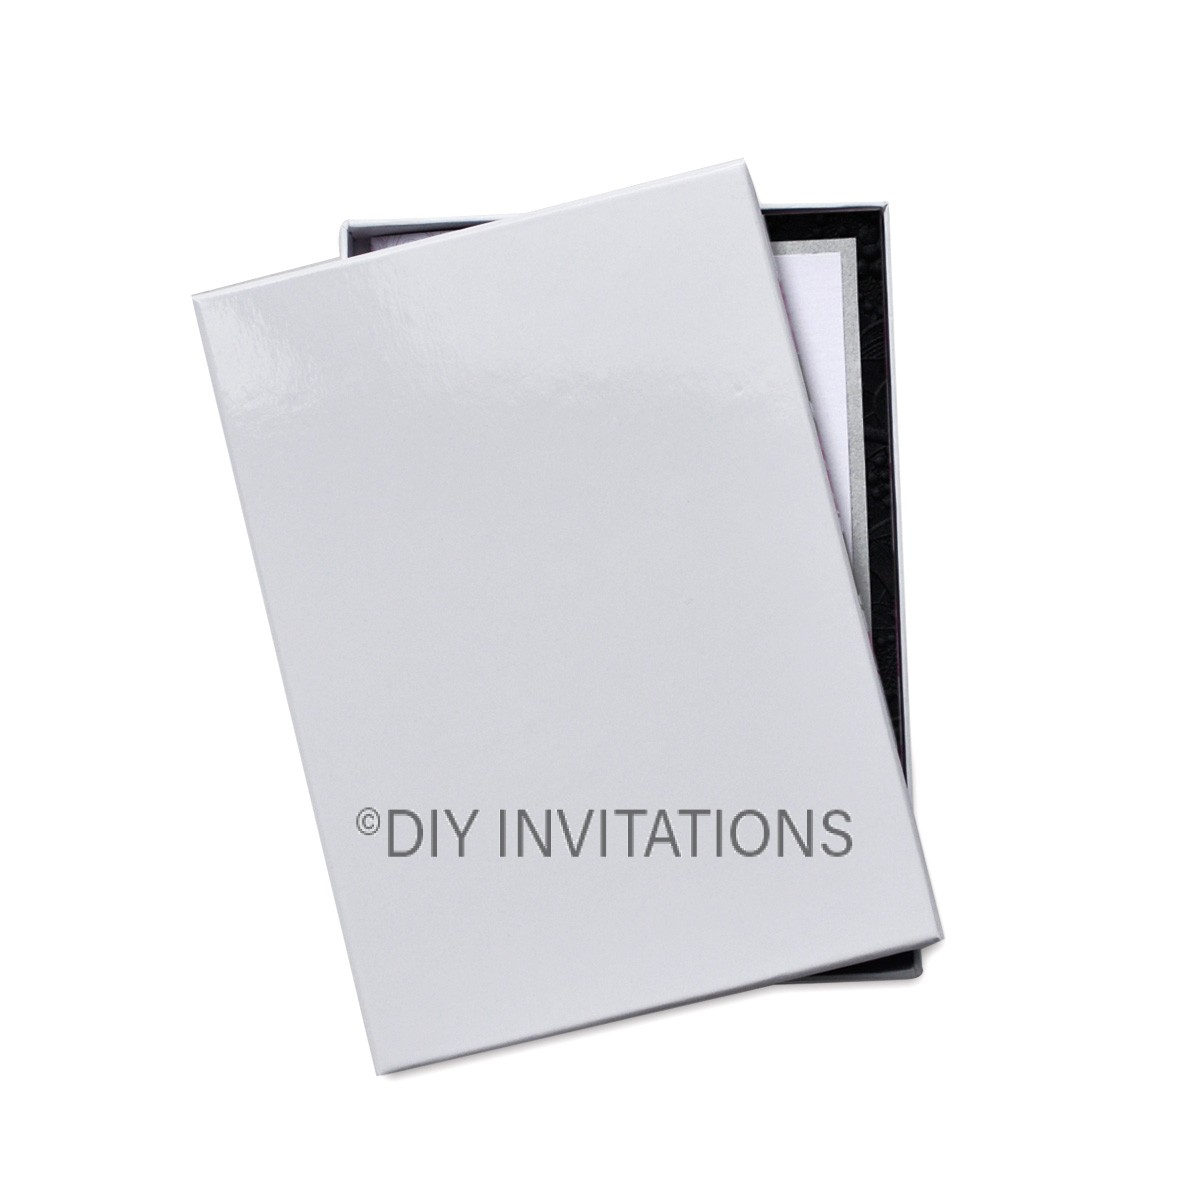 Rigid Invitation Box - 11B - Gloss White (93x149mm)